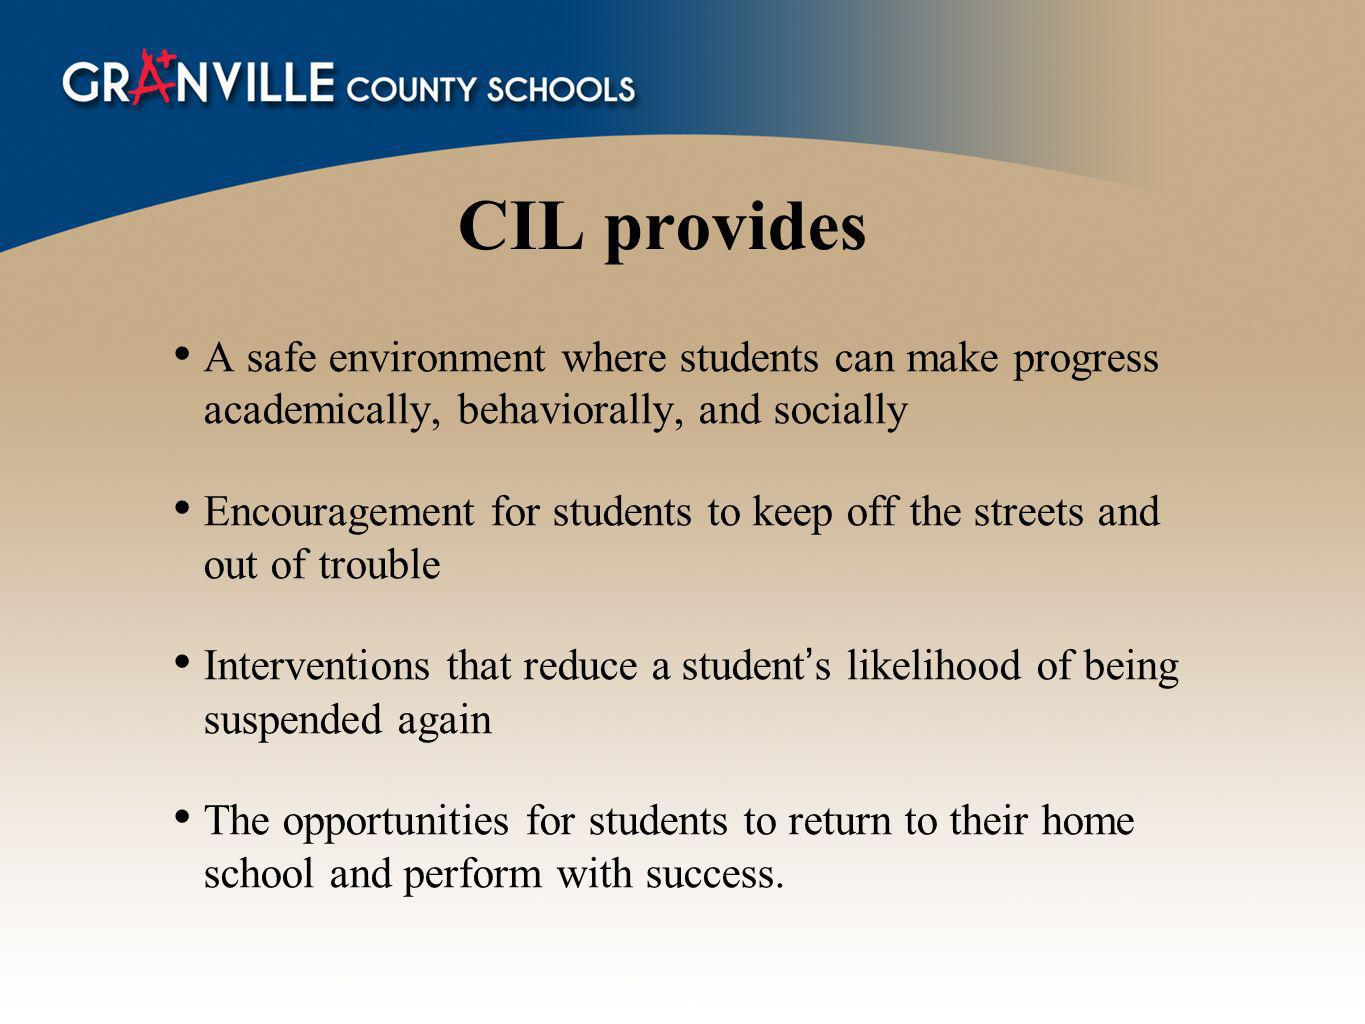 CIL provides A safe environment where students can make progress academically, behaviorally, and socially Encouragement for students to keep off the streets and out of trouble Interventions that reduce a students likelihood of being suspended again The opportunities for students to return to their home school and perform with success.